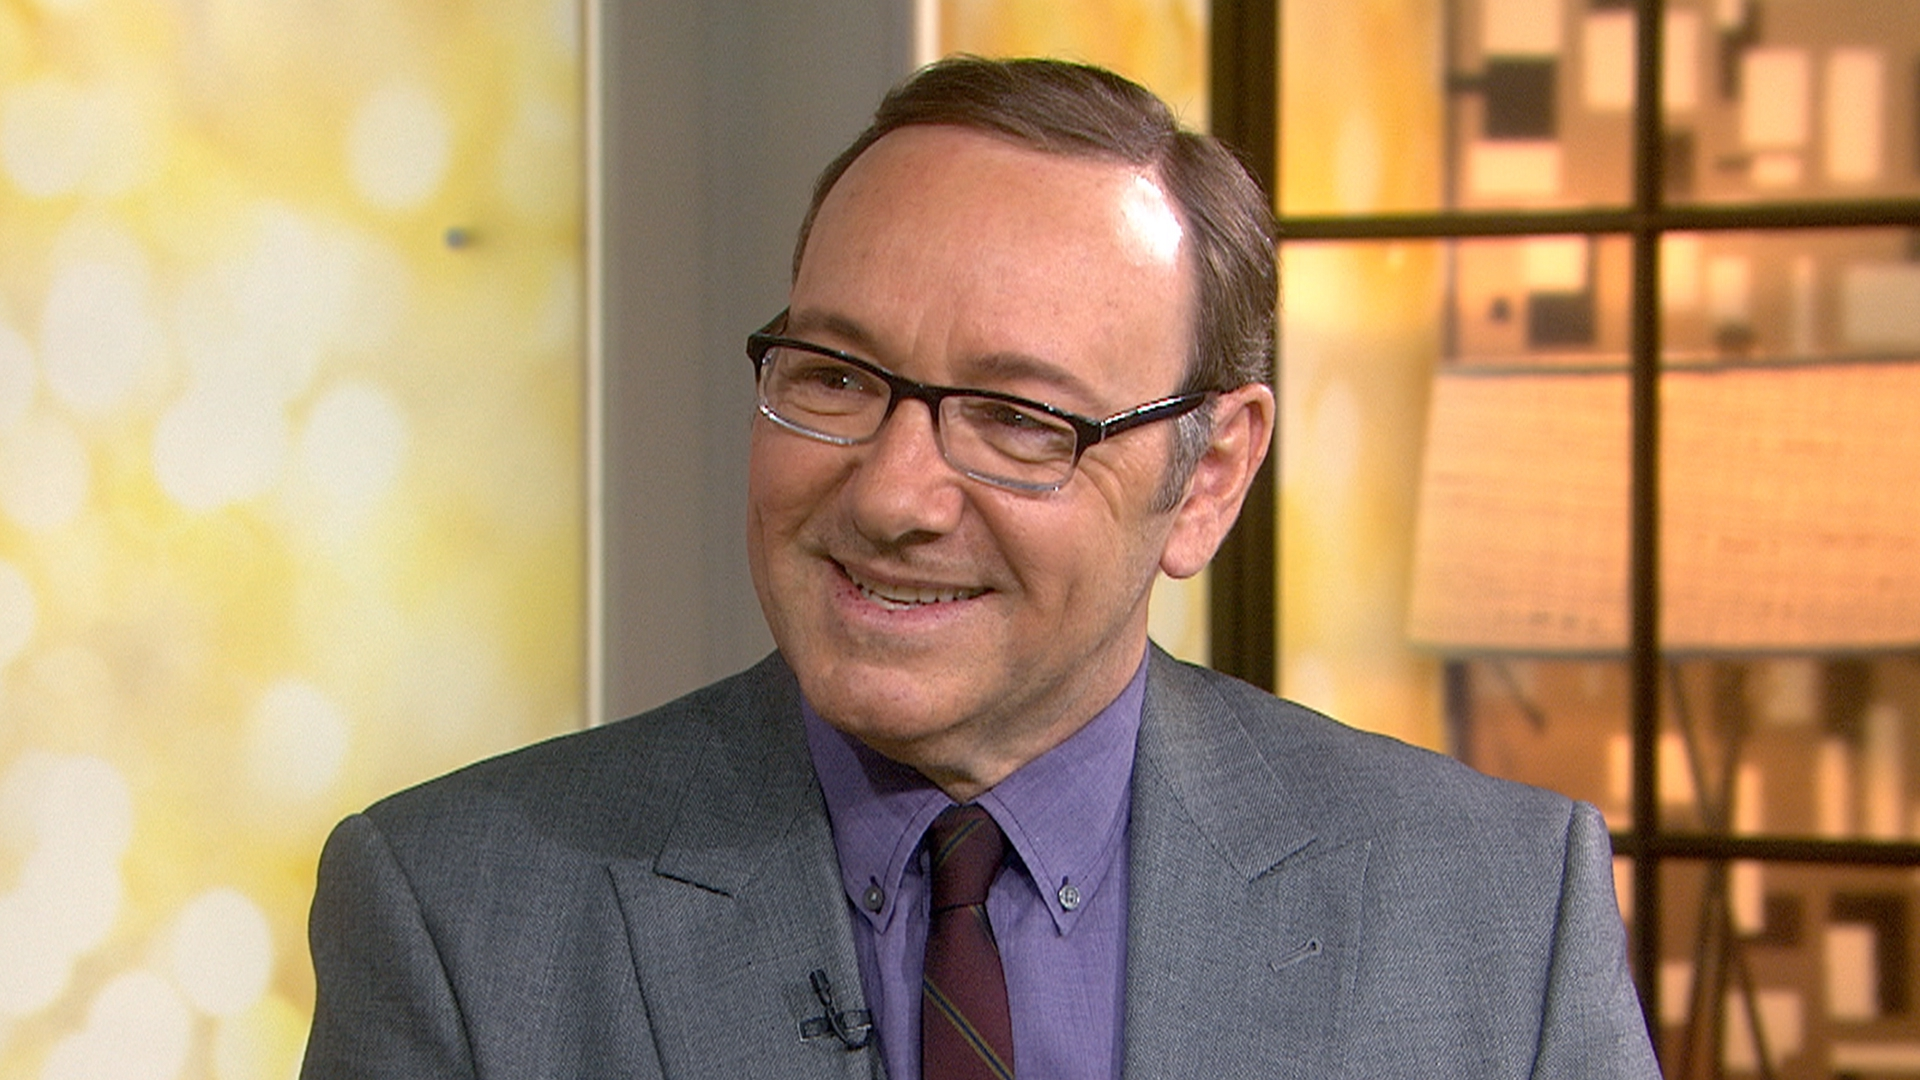 Kevin Spacey High Definition